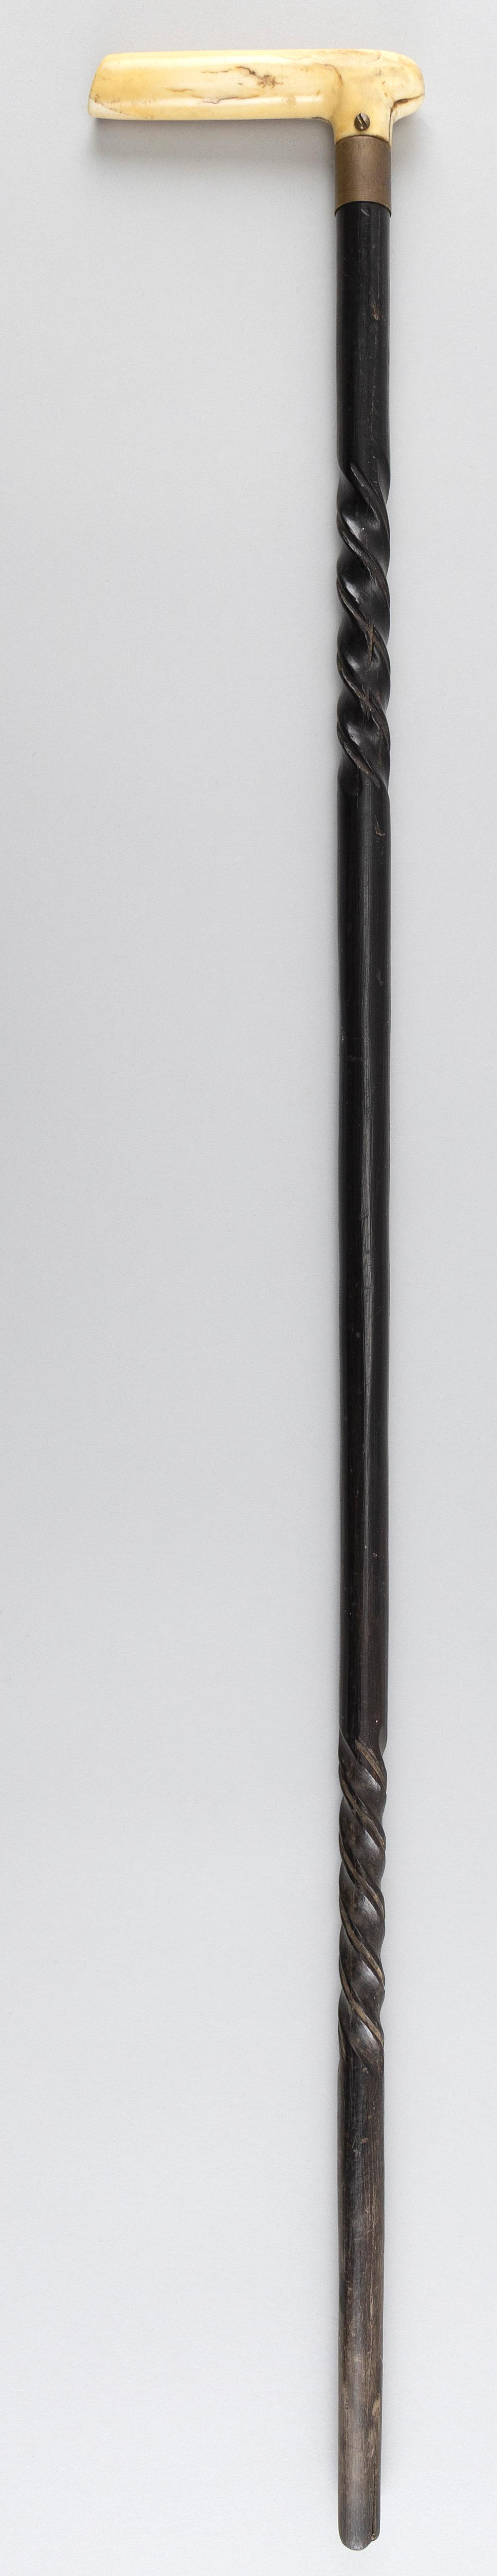 WOODEN CANE WITH BONE HANDLE CARVED IN THE FORM OF A FISH Twist-carved shaft. Length 33